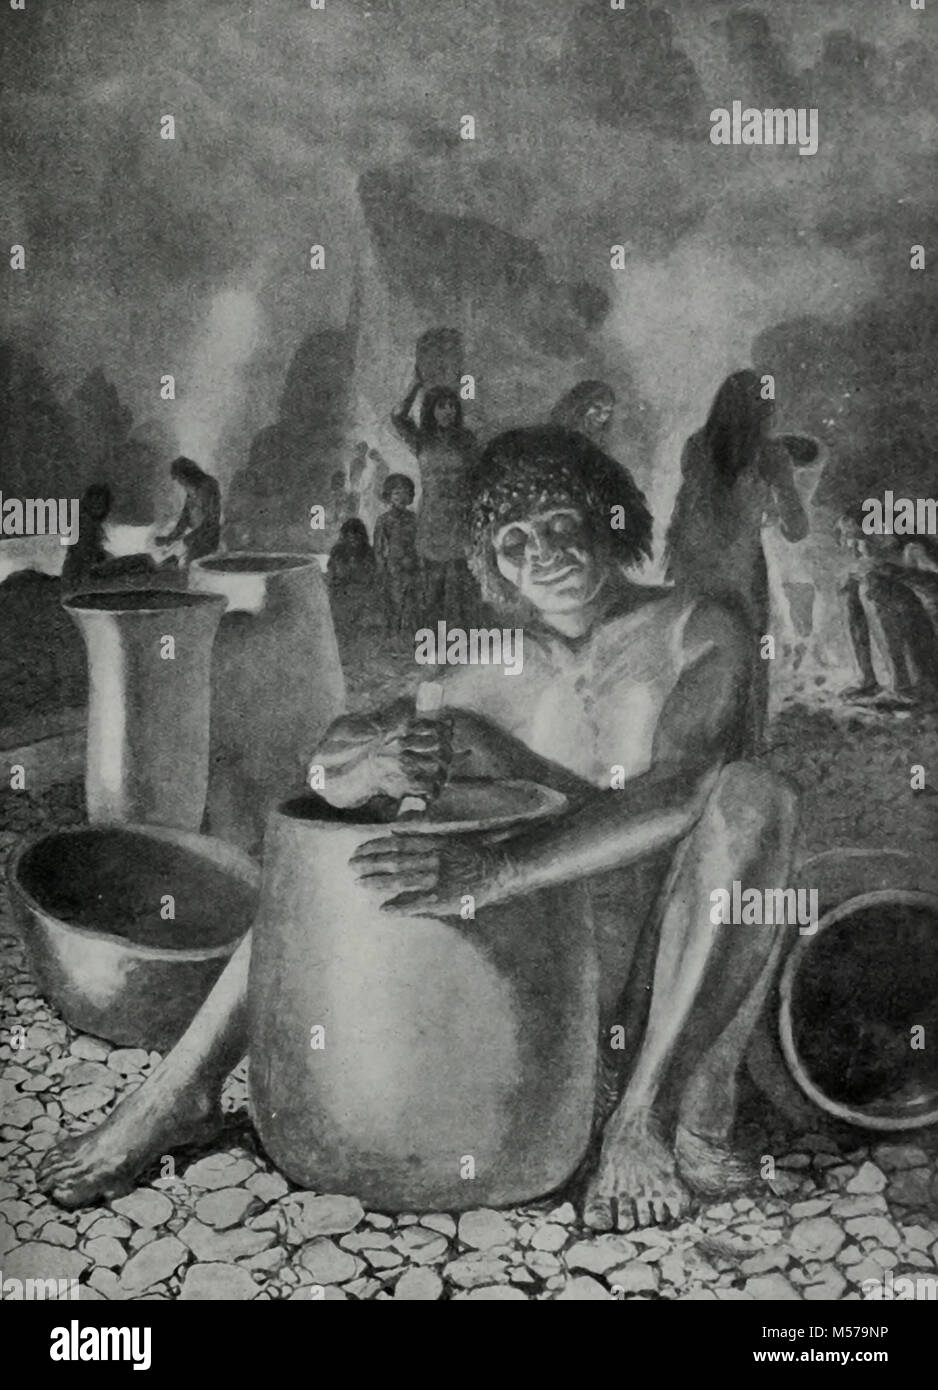 Early Egyptians making Pottery 10,000 years ago - Stock Image